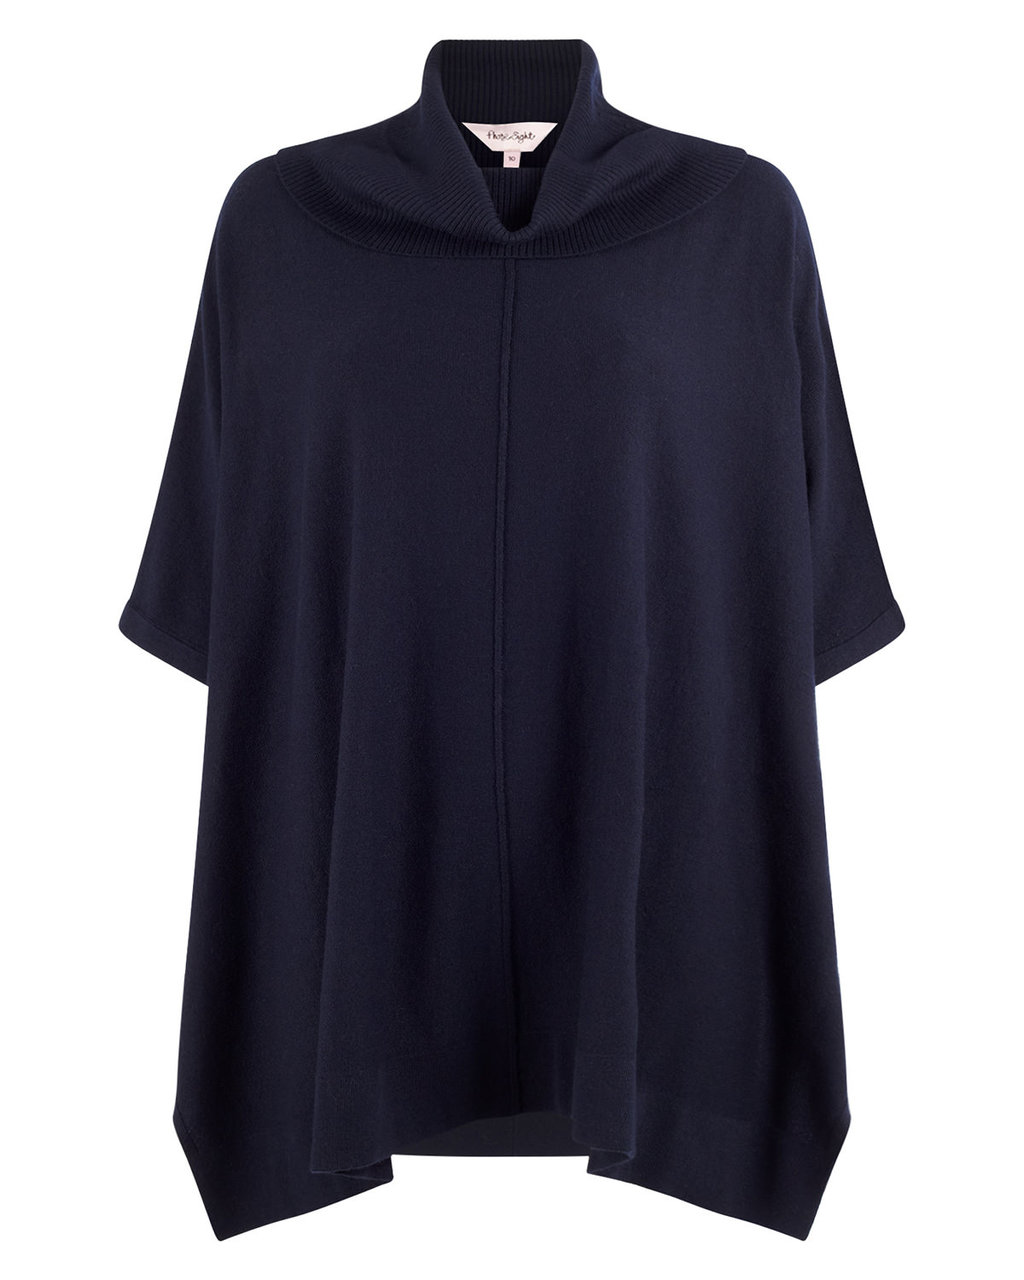 Petula Poncho - sleeve style: dolman/batwing; pattern: plain; length: below the bottom; neckline: roll neck; style: poncho; predominant colour: navy; occasions: casual, creative work; fibres: polyester/polyamide - mix; fit: loose; sleeve length: half sleeve; texture group: knits/crochet; pattern type: knitted - other; season: a/w 2015